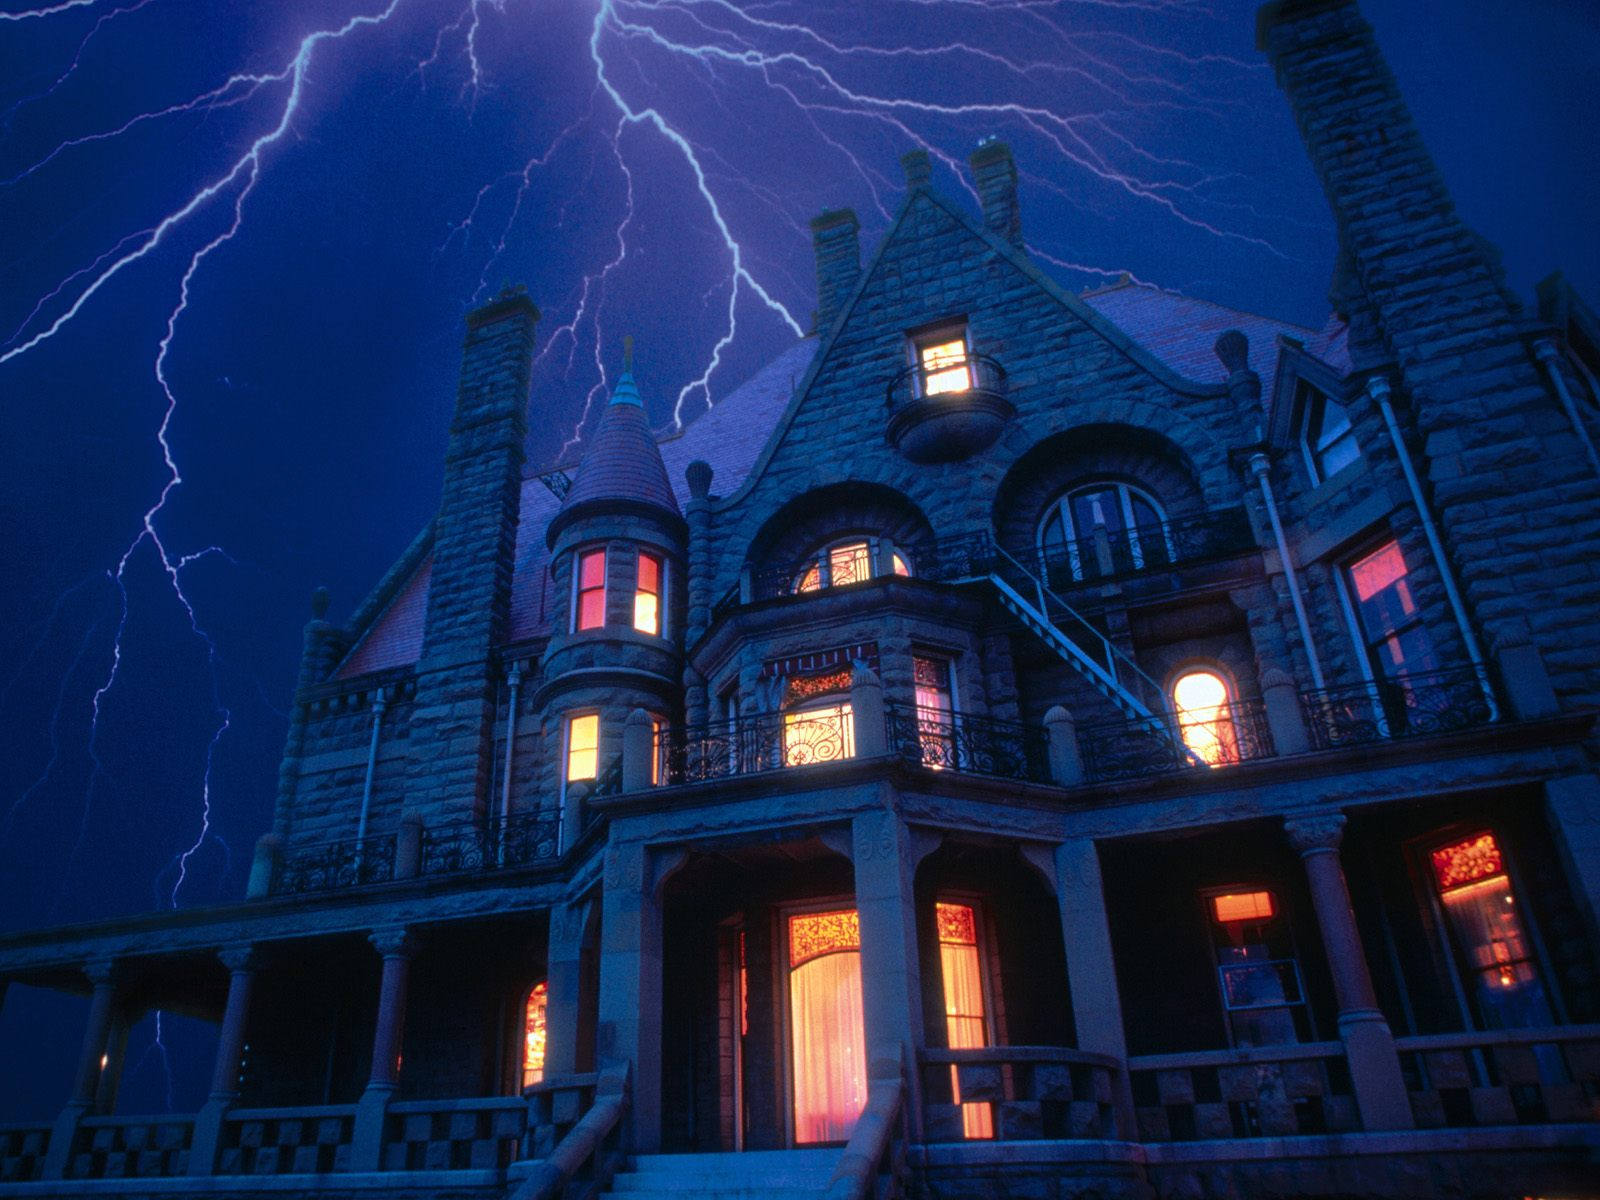 [Mision] Thiefs, valkyries and spooks Spooky-house-with-lightening